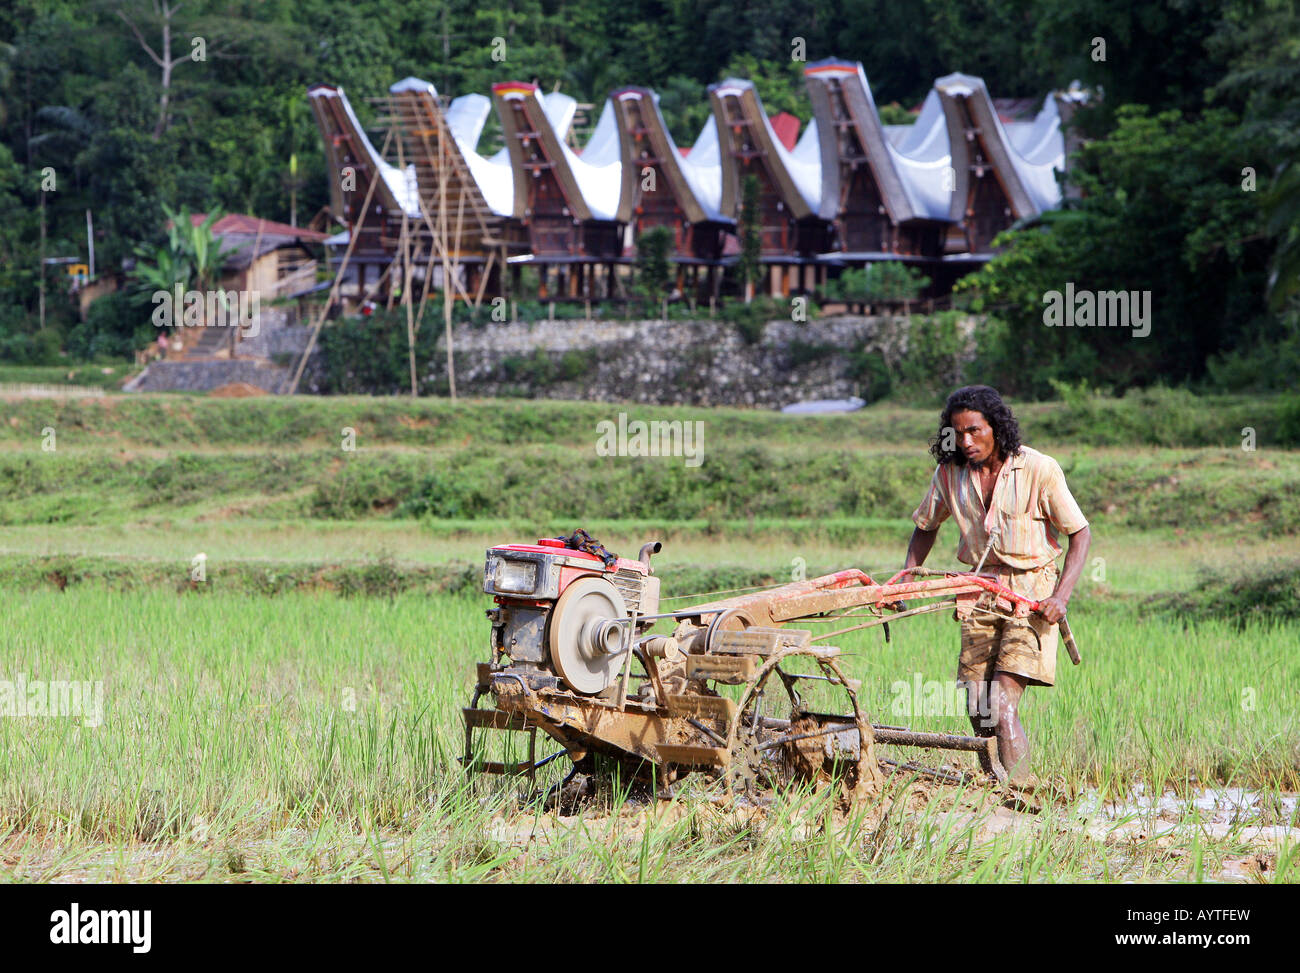 Indonesia, man plowing rice field with a tractor, Sulawesi Island near Rantepao - Stock Image